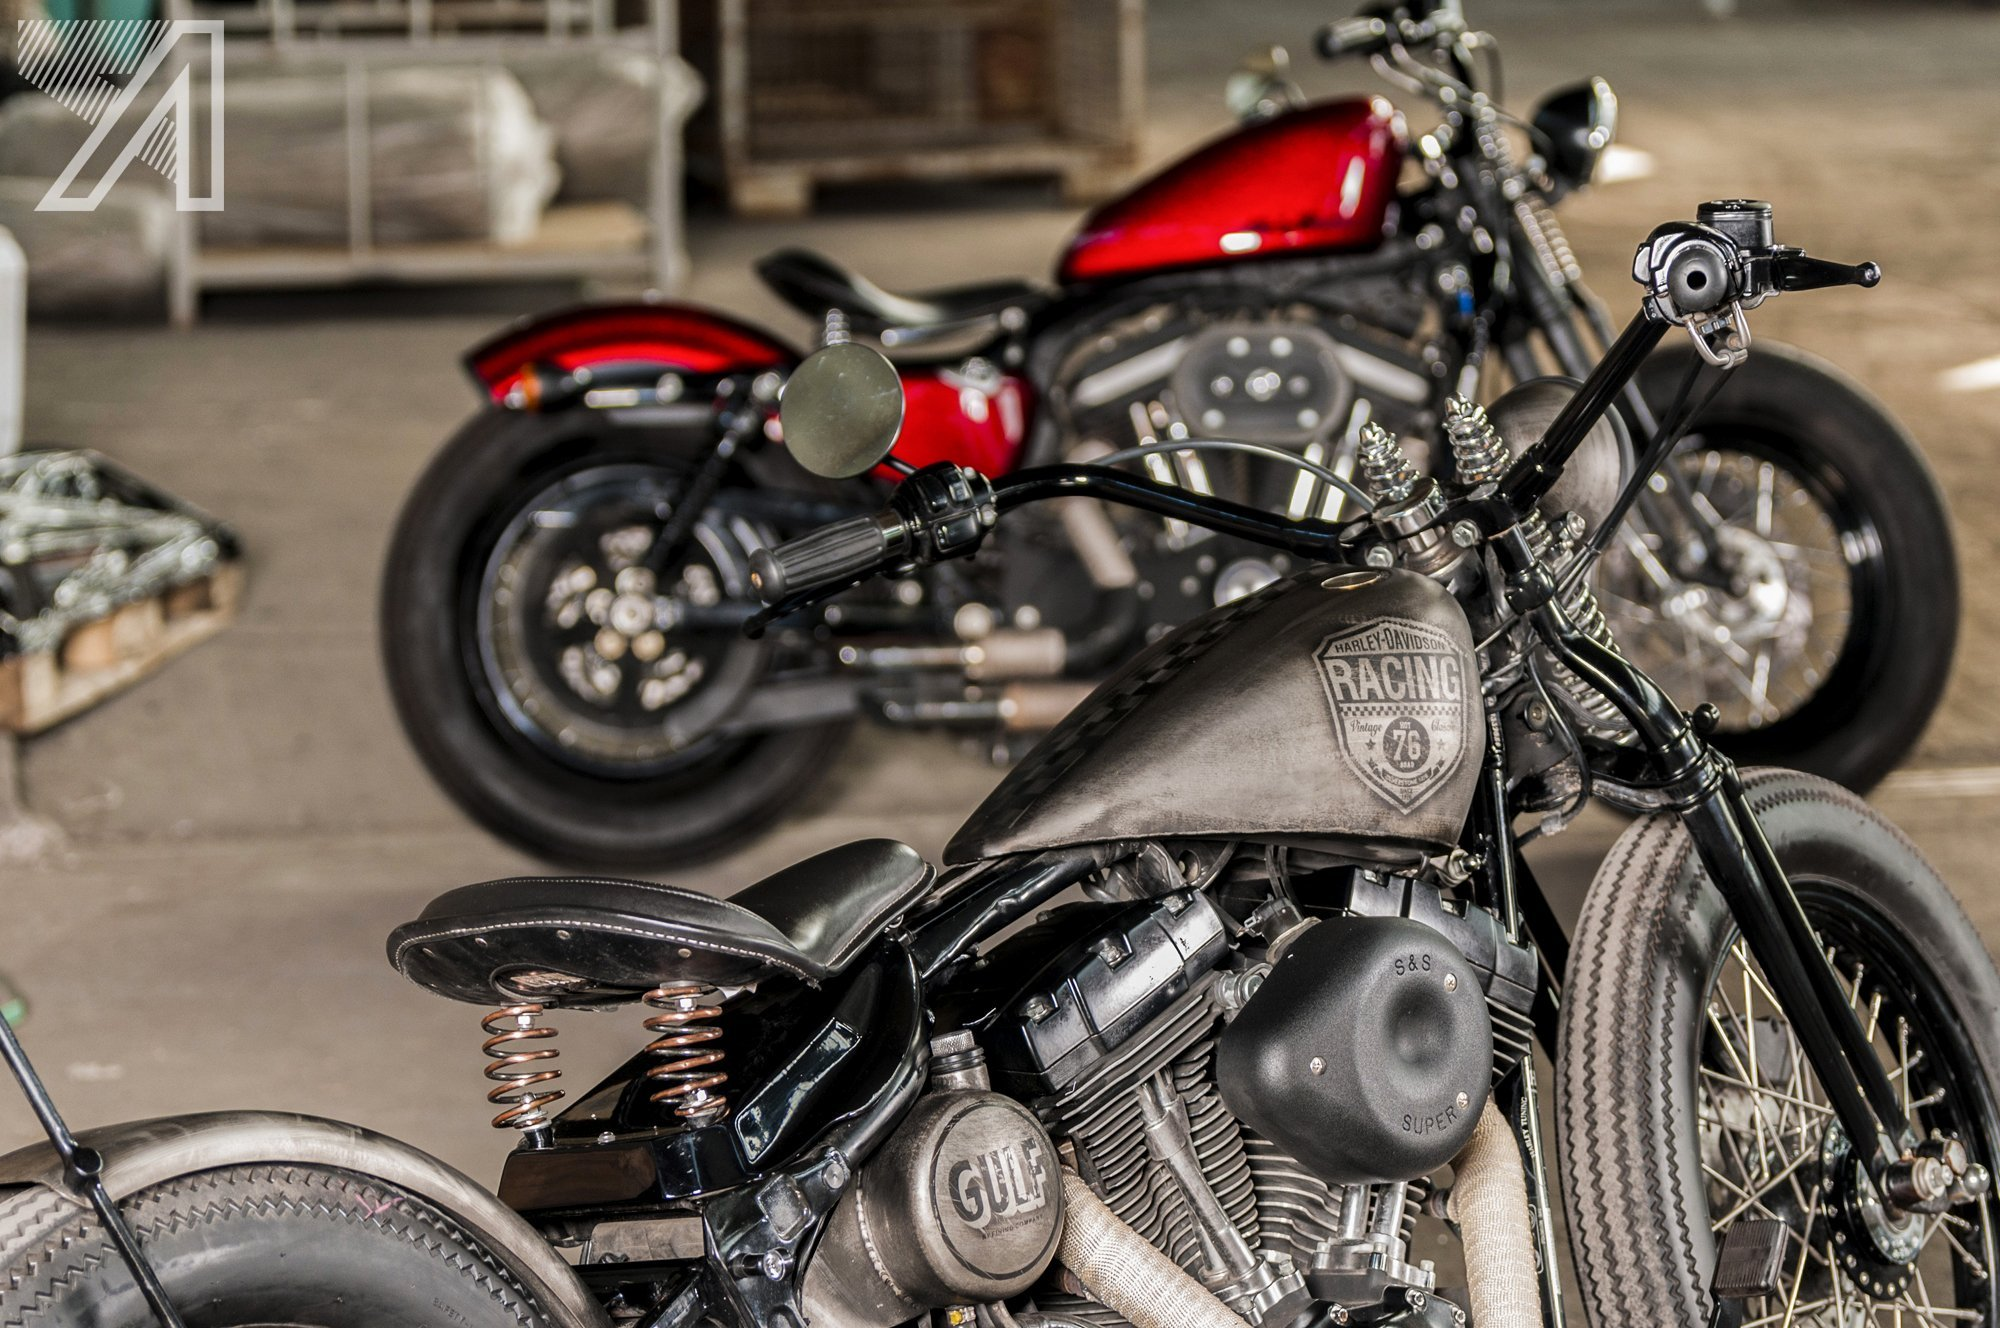 2016-10::1476032274-h-d-springer-steel-body-1.jpg